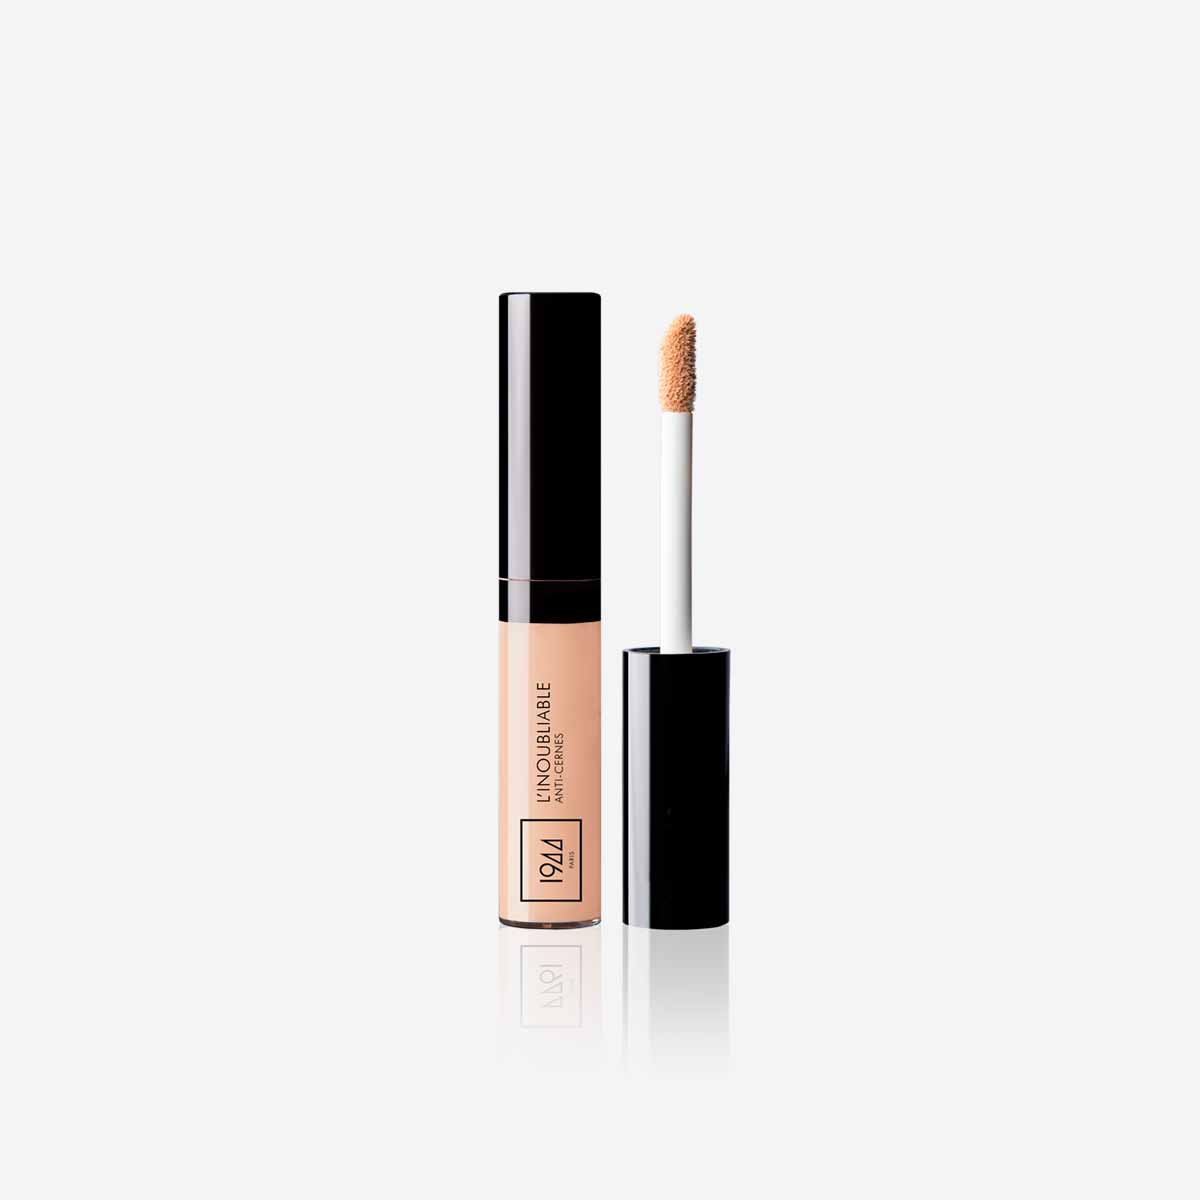 L'Inoubliable 1944 Rosy Beige - Concealer